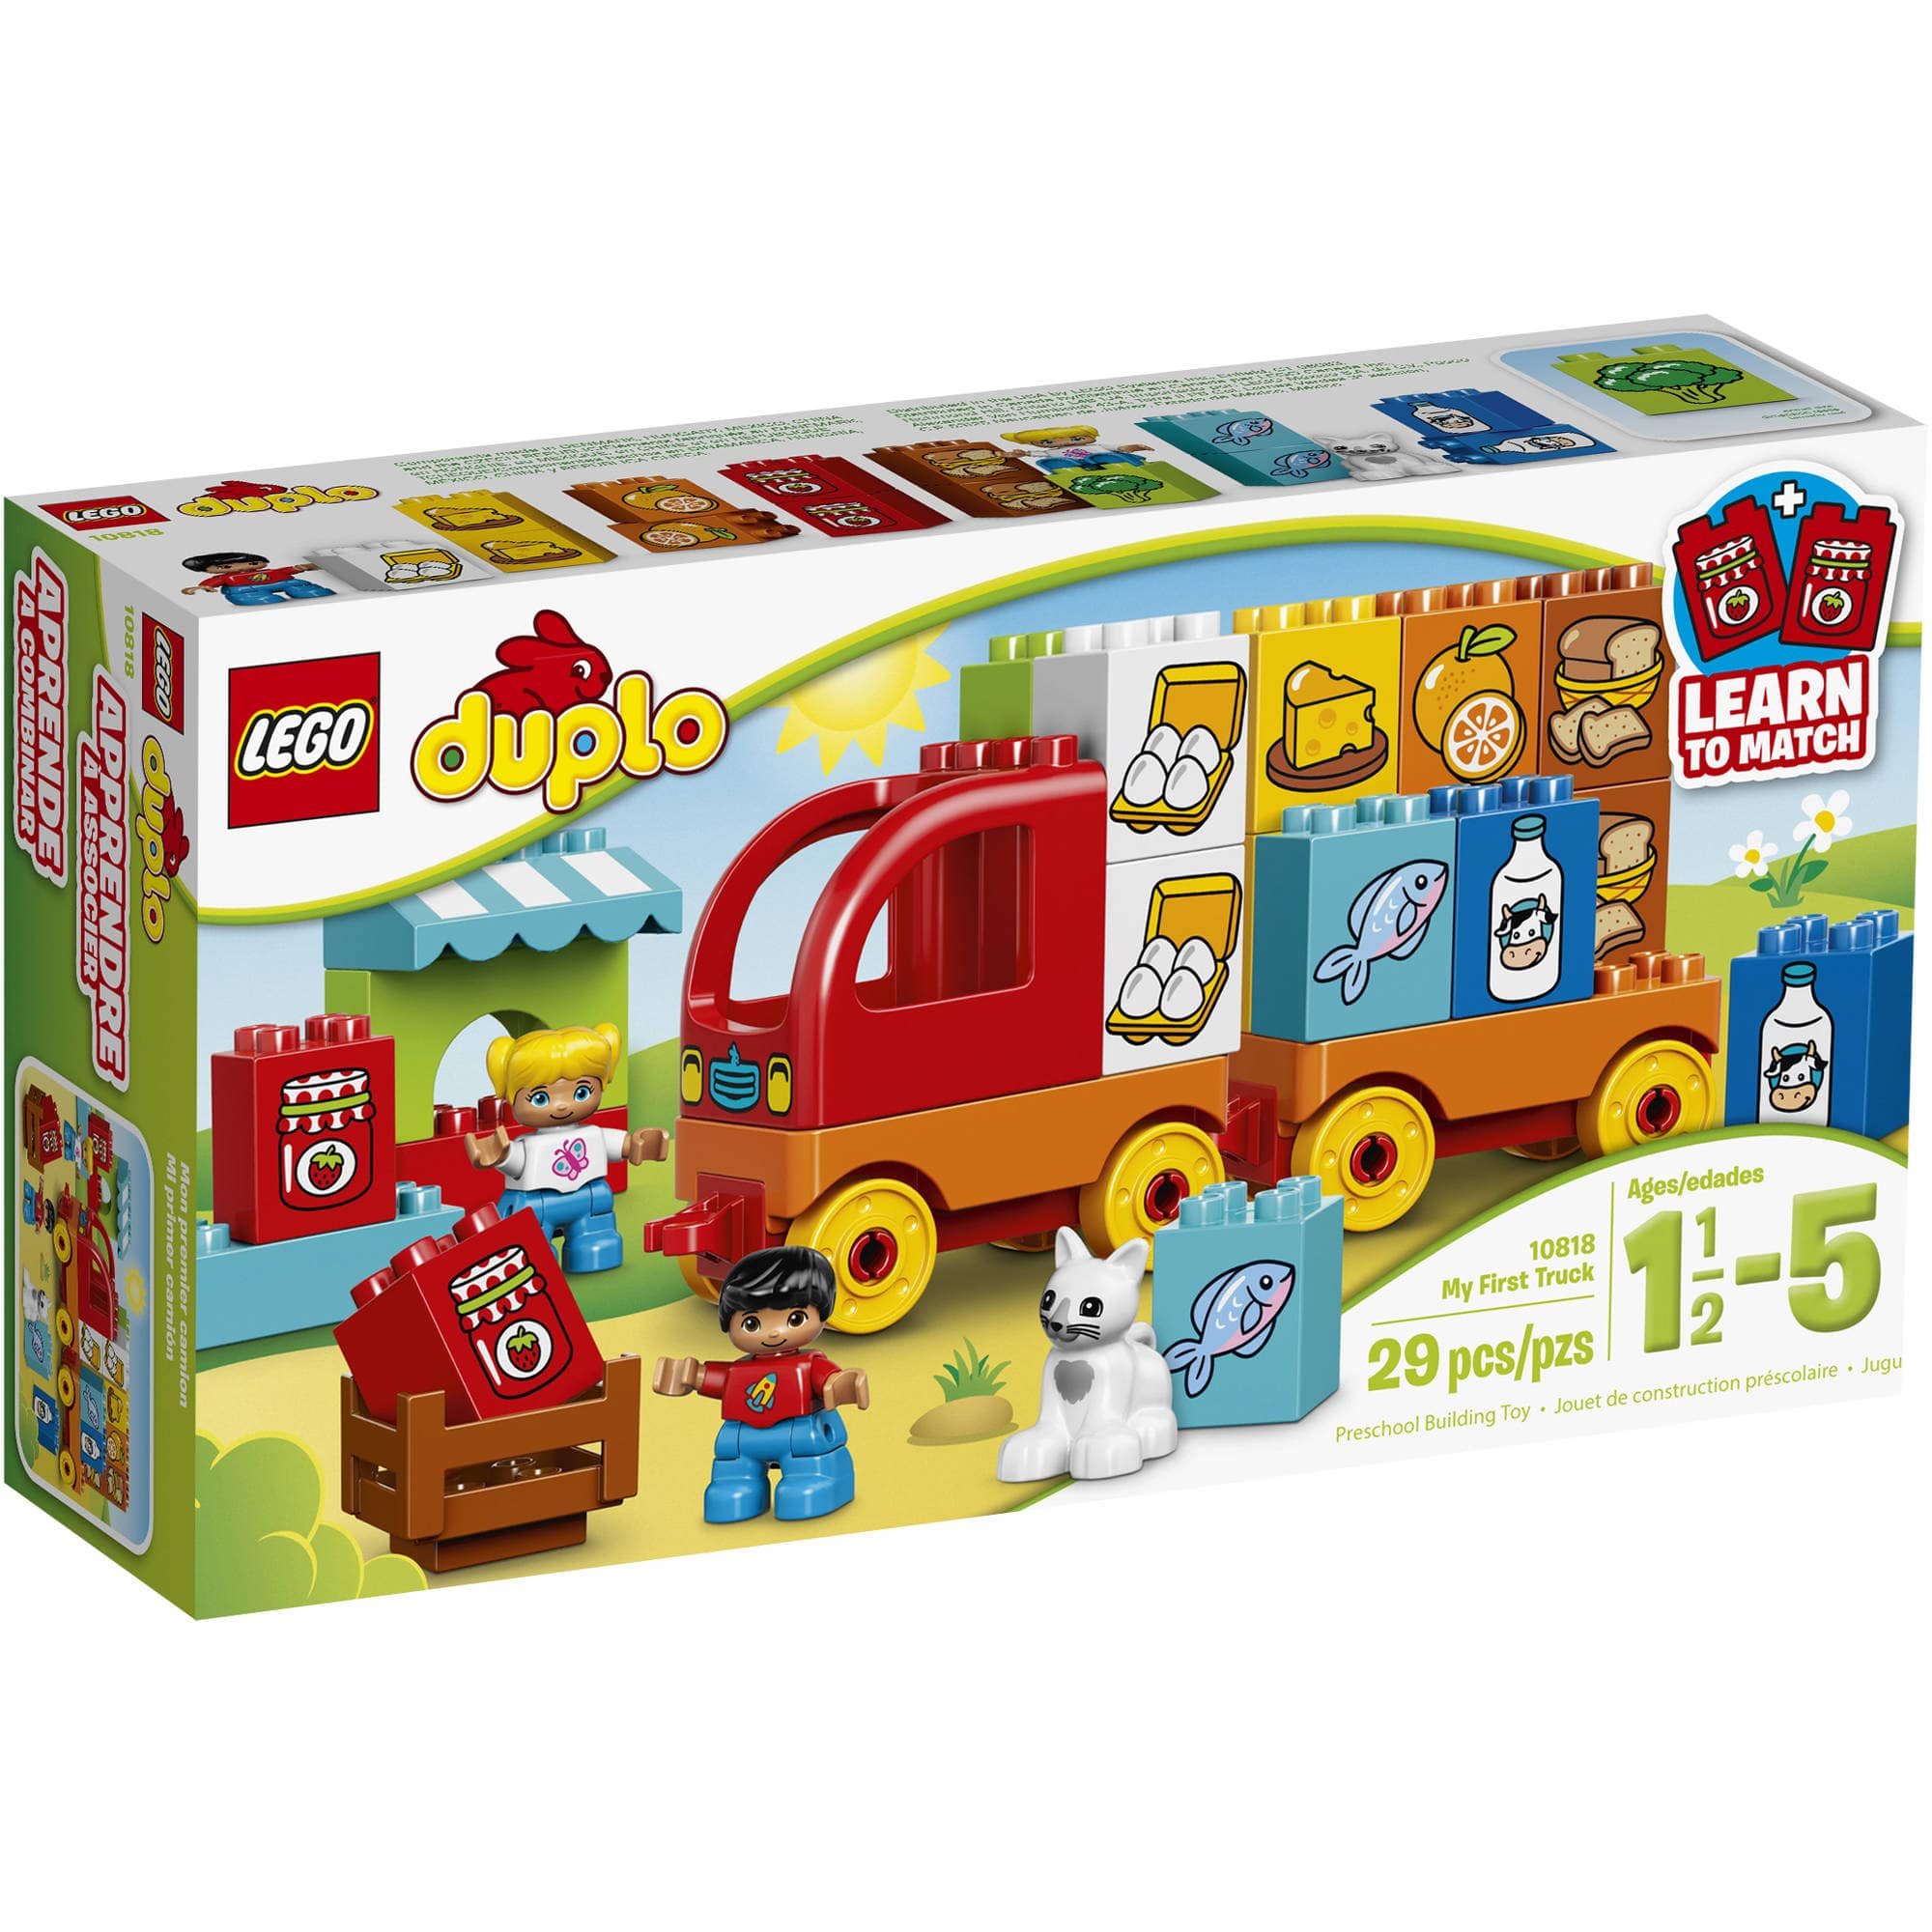 LEGO DUPLO My First Truck Slickdeals